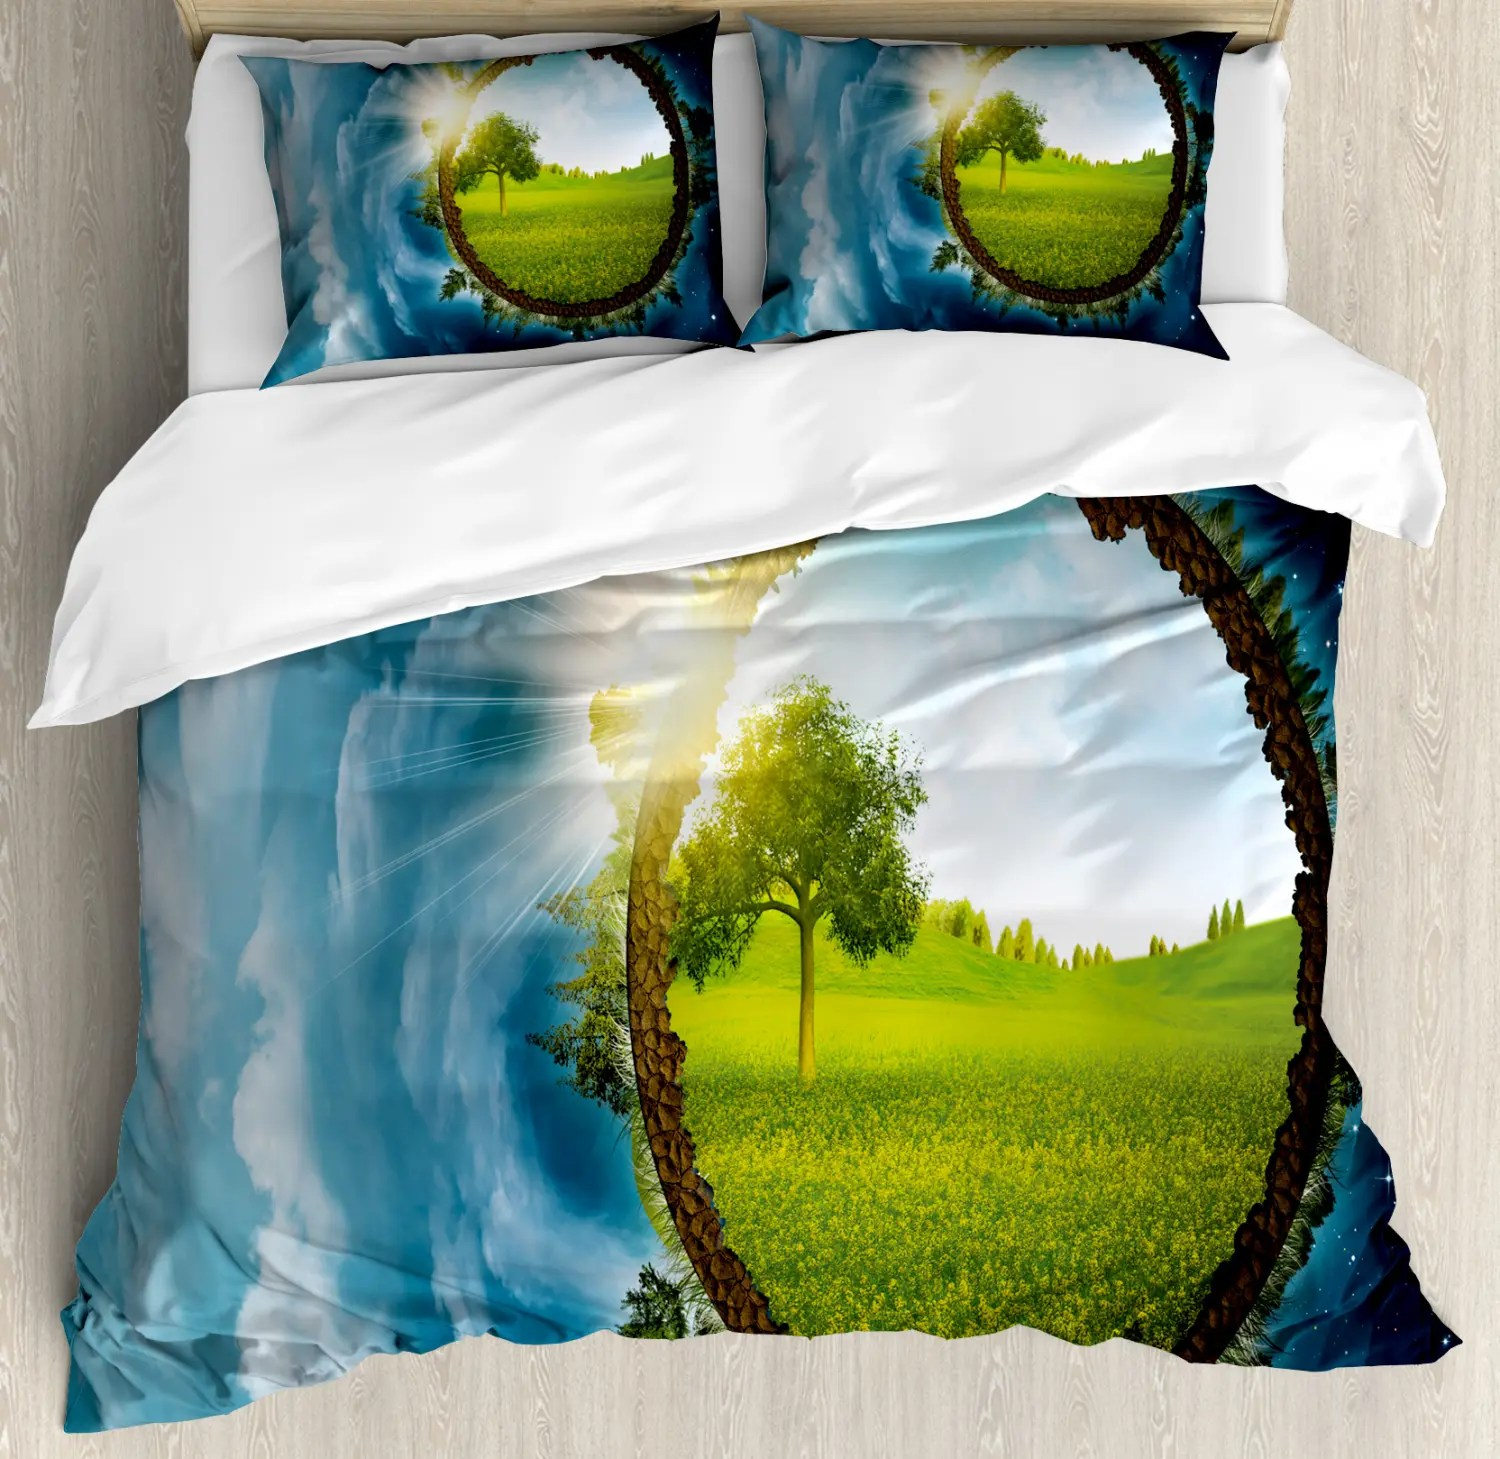 The Vampire Diaries Bettwäsche Earth Duvet Cover Set With Shams Circle Greenery Print Pillow